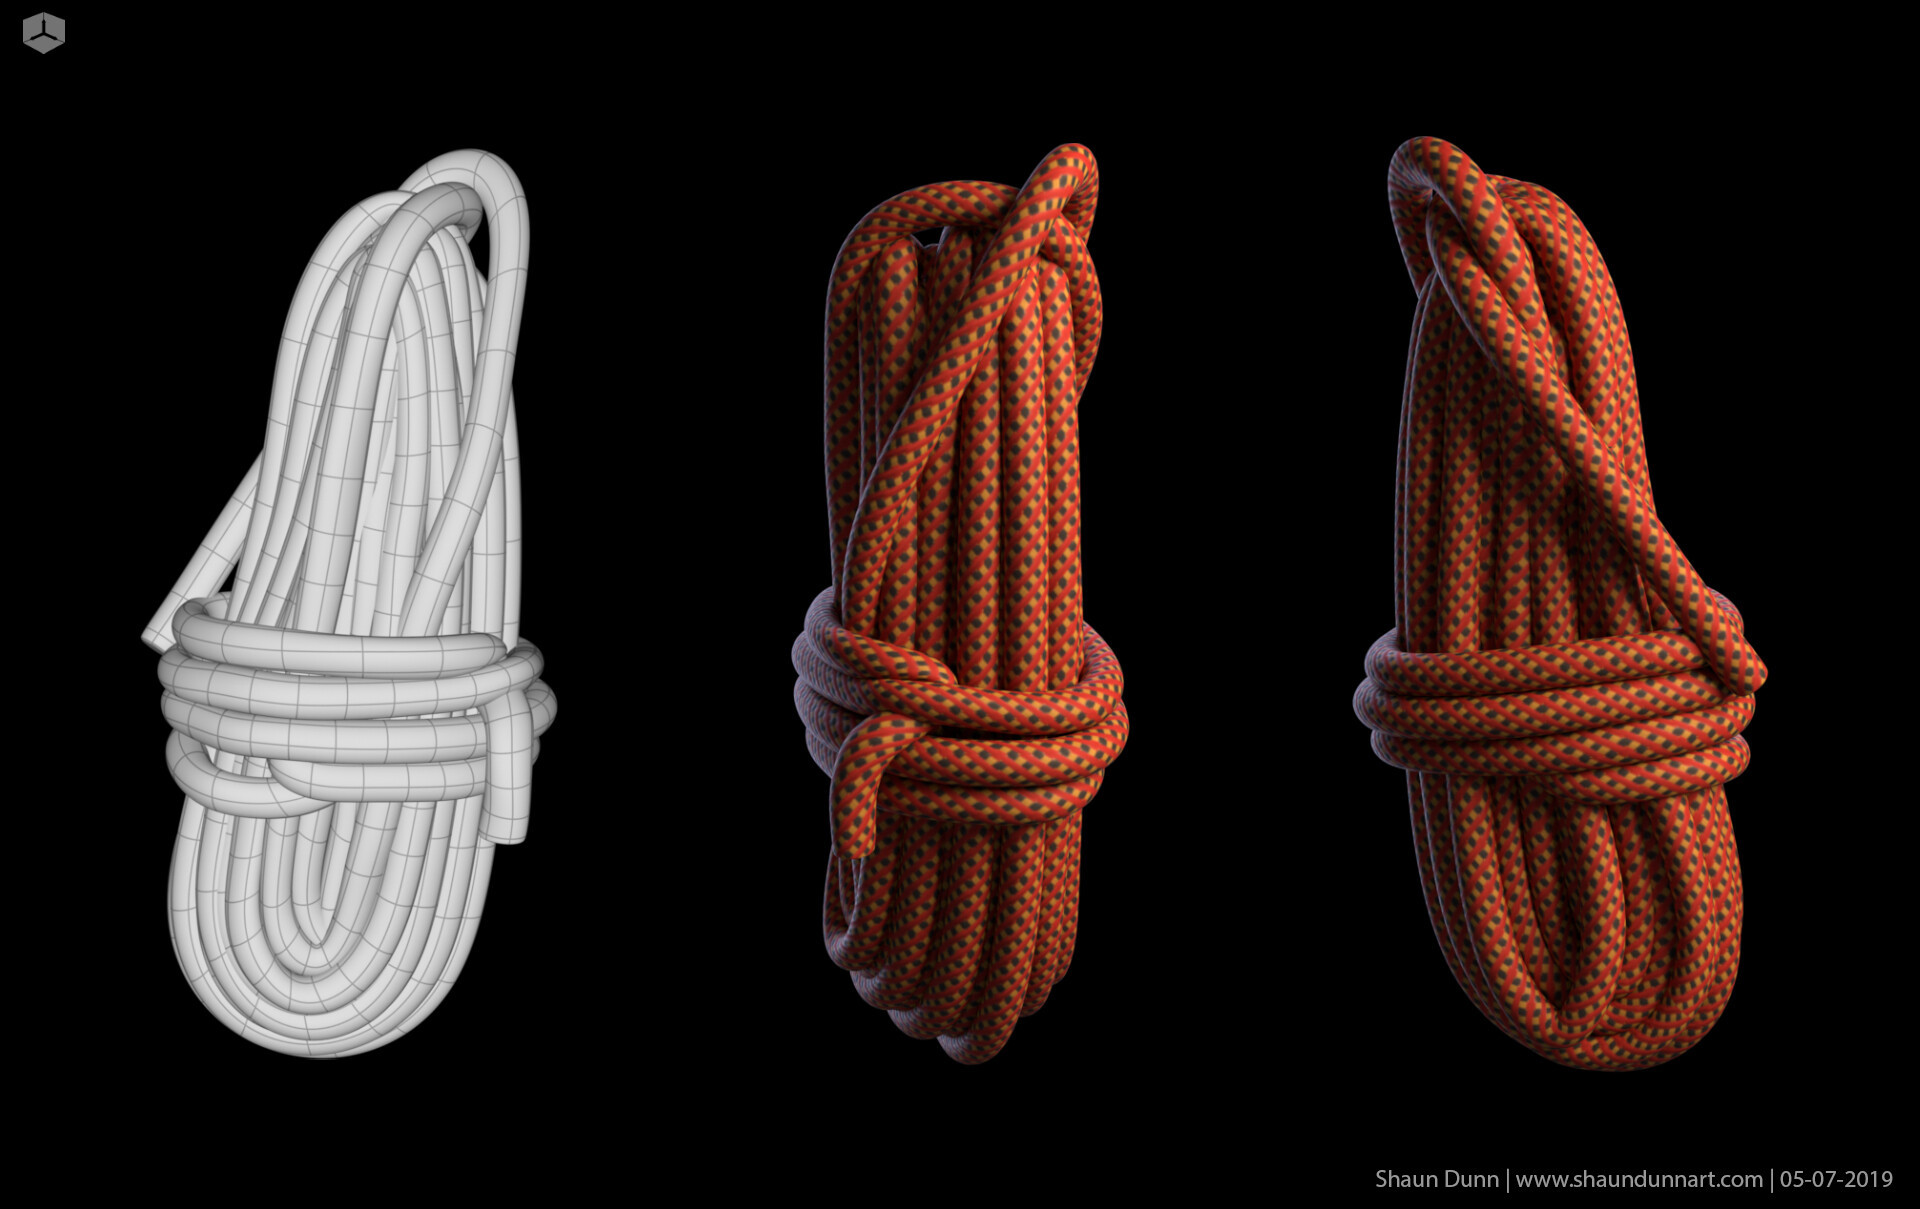 This climbing rope was pretty tricky to model at least to make it look almost exactly like the prop from the film UP with only a few images for reference.